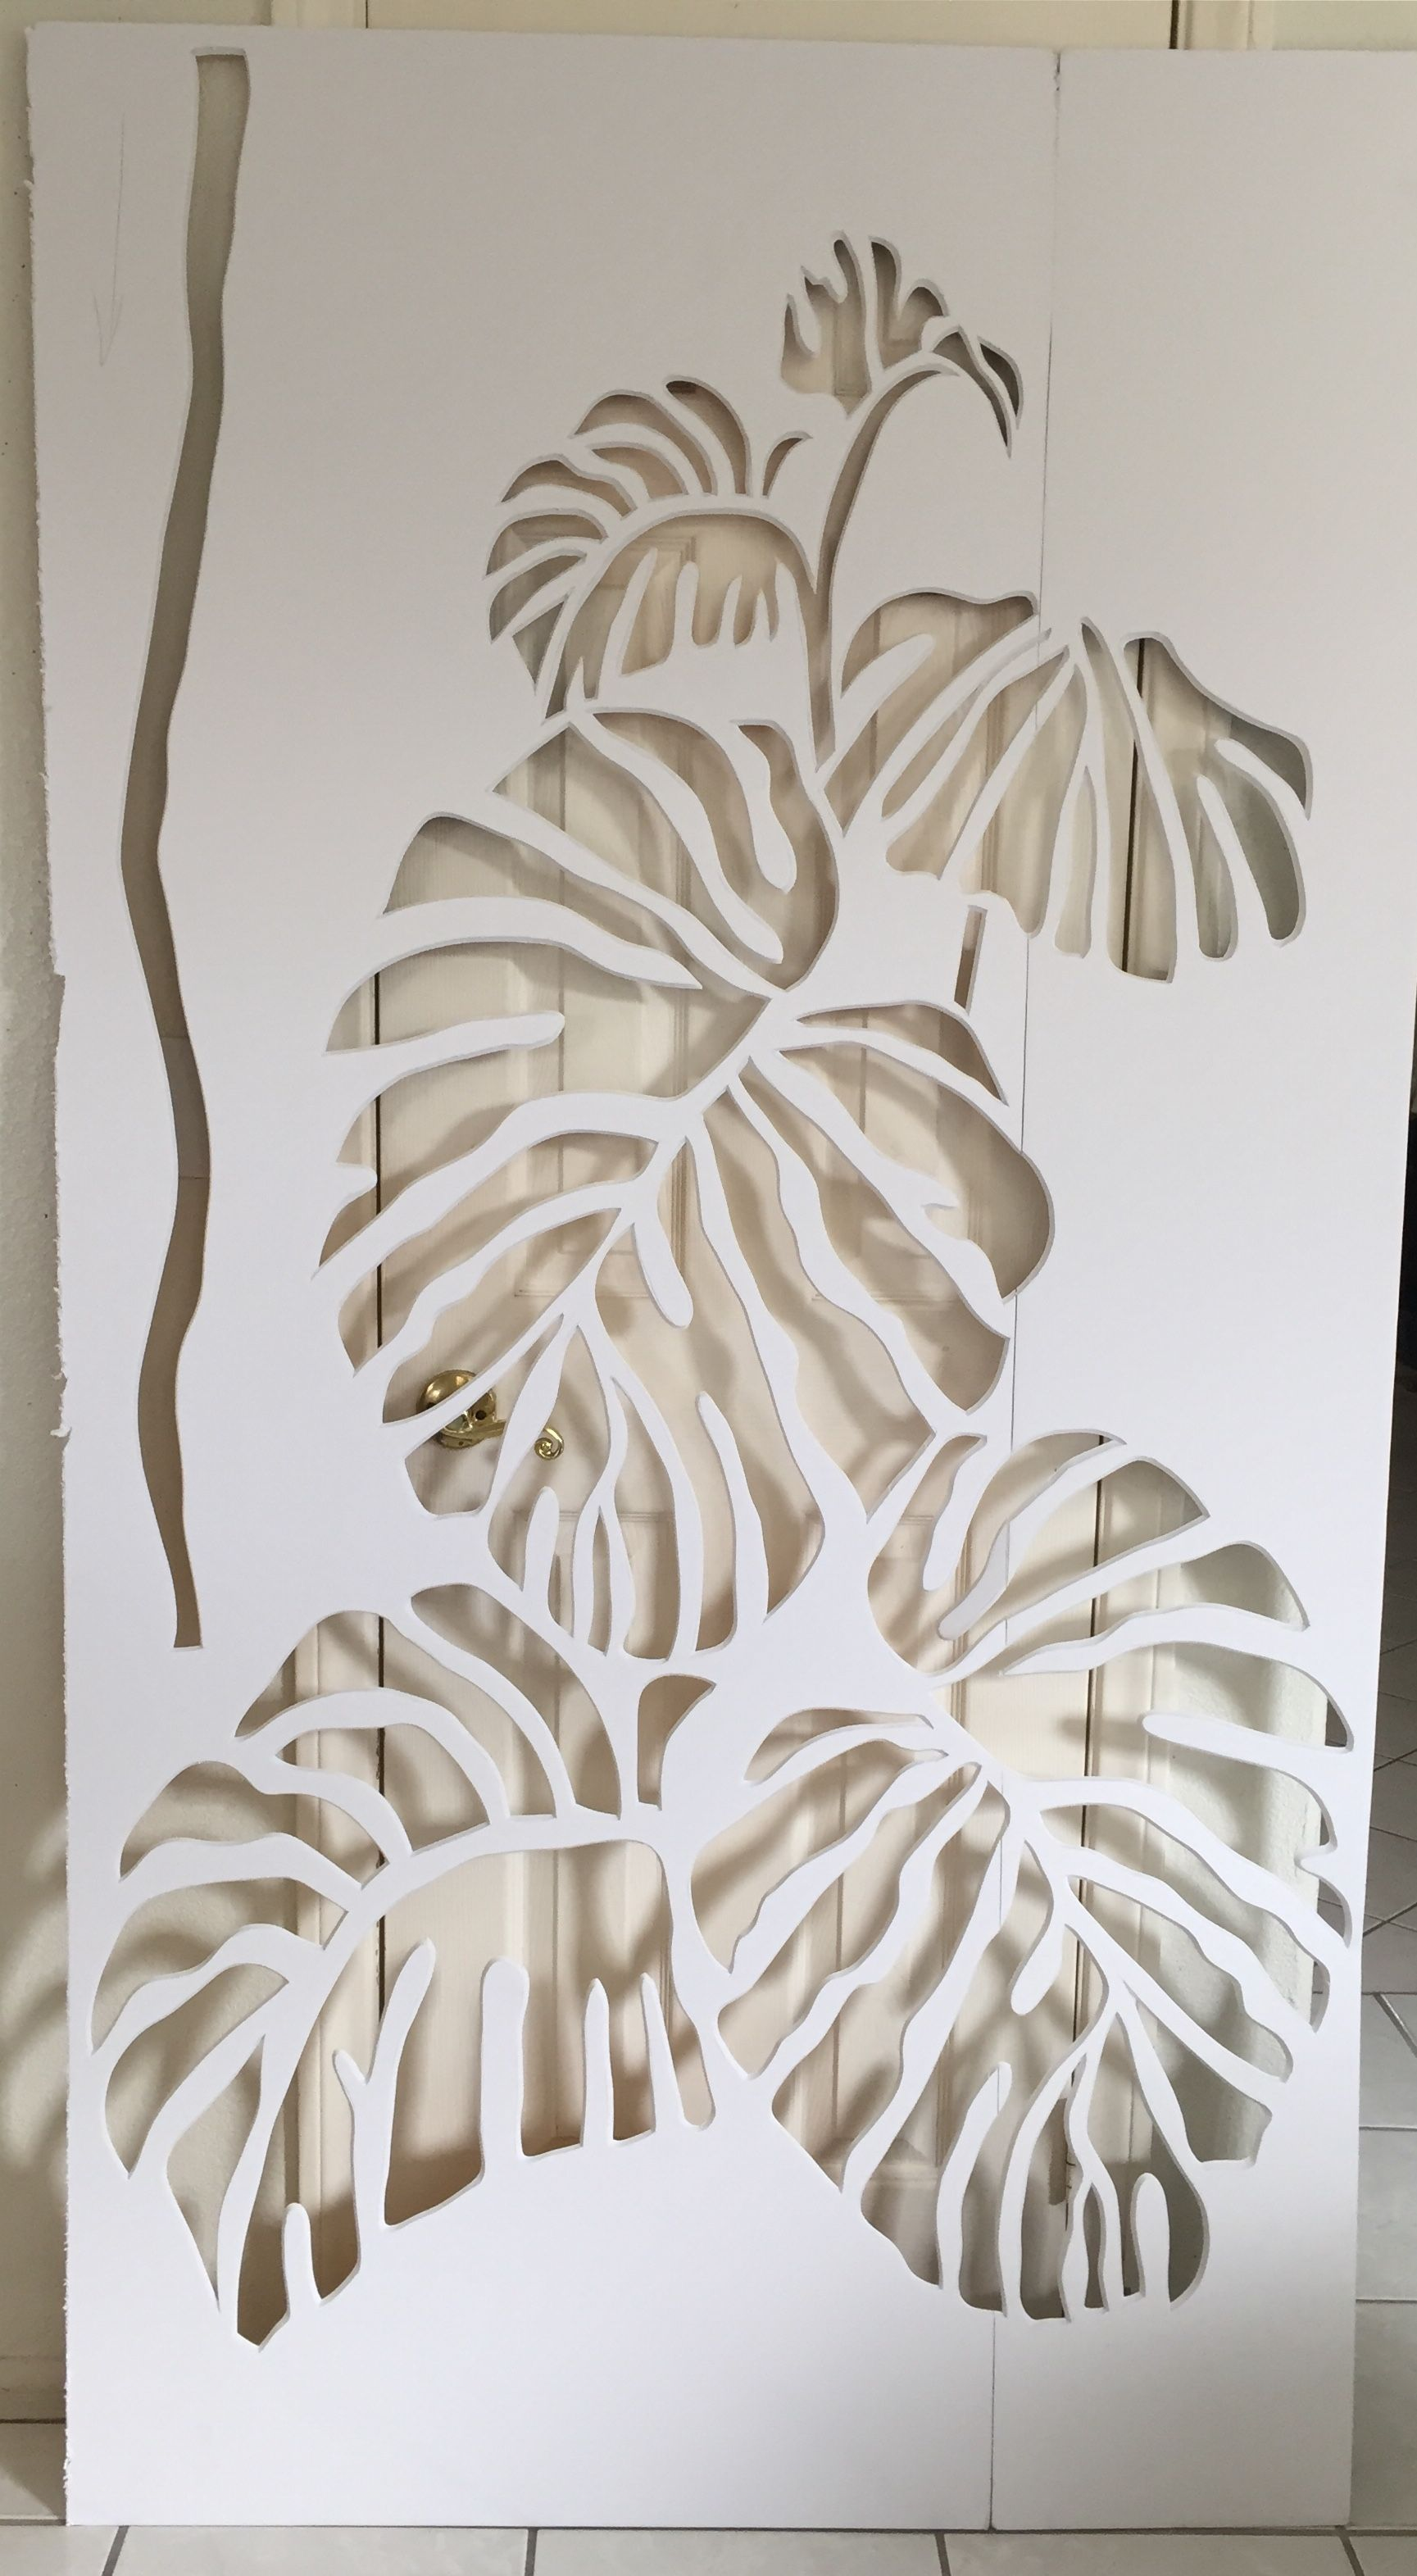 Pacific foam clipart graphic free library PACIFIC PARADISE philodendron homemade stencil made out of ... graphic free library